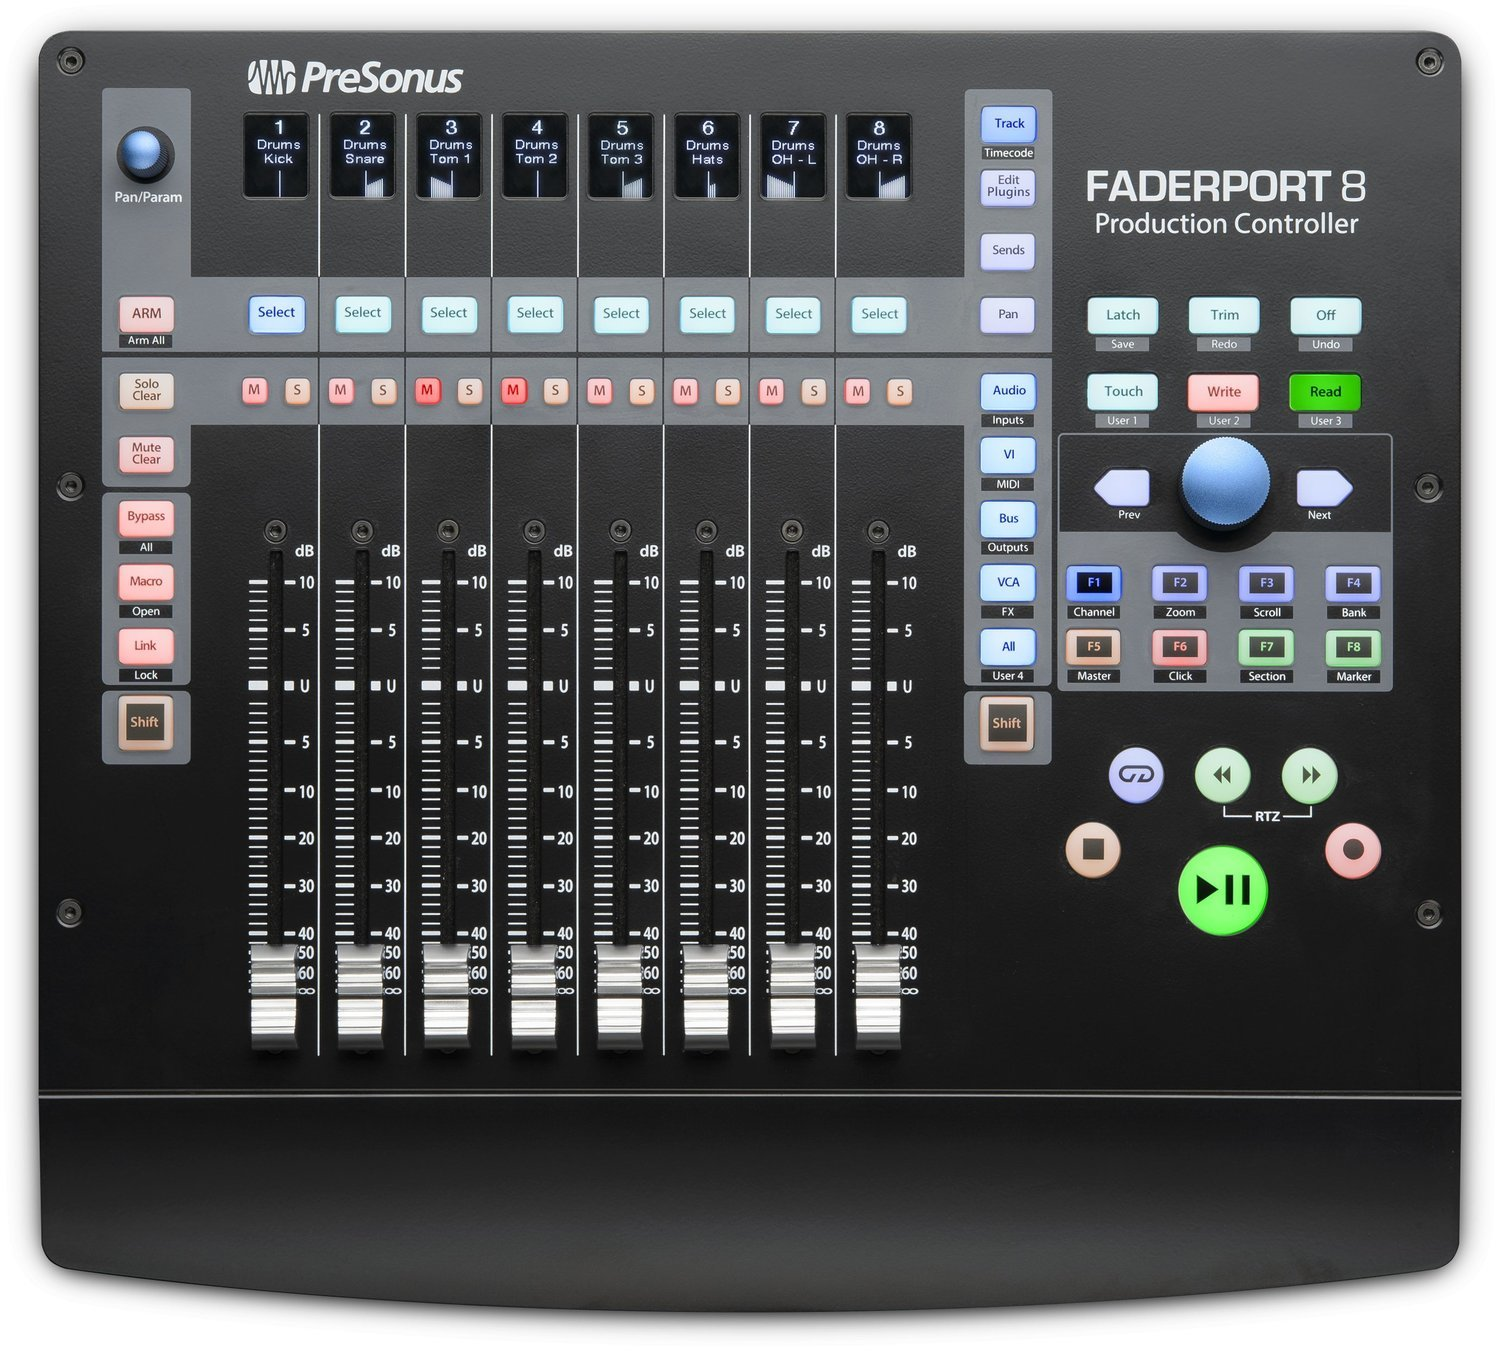 Personus FaderPort 8 Production Controller